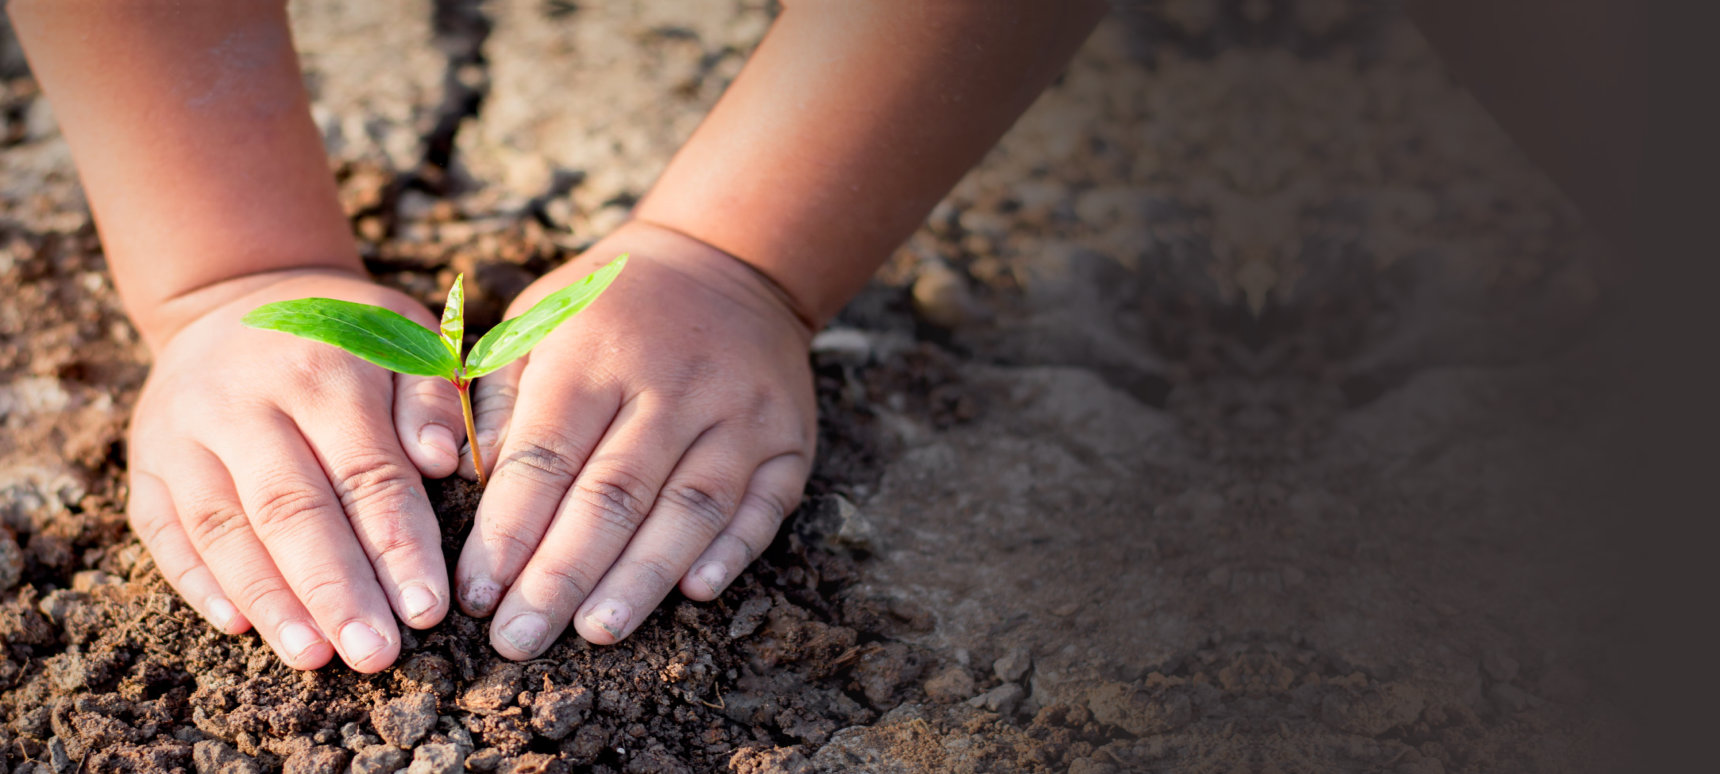 little kid's hand planting a sapling